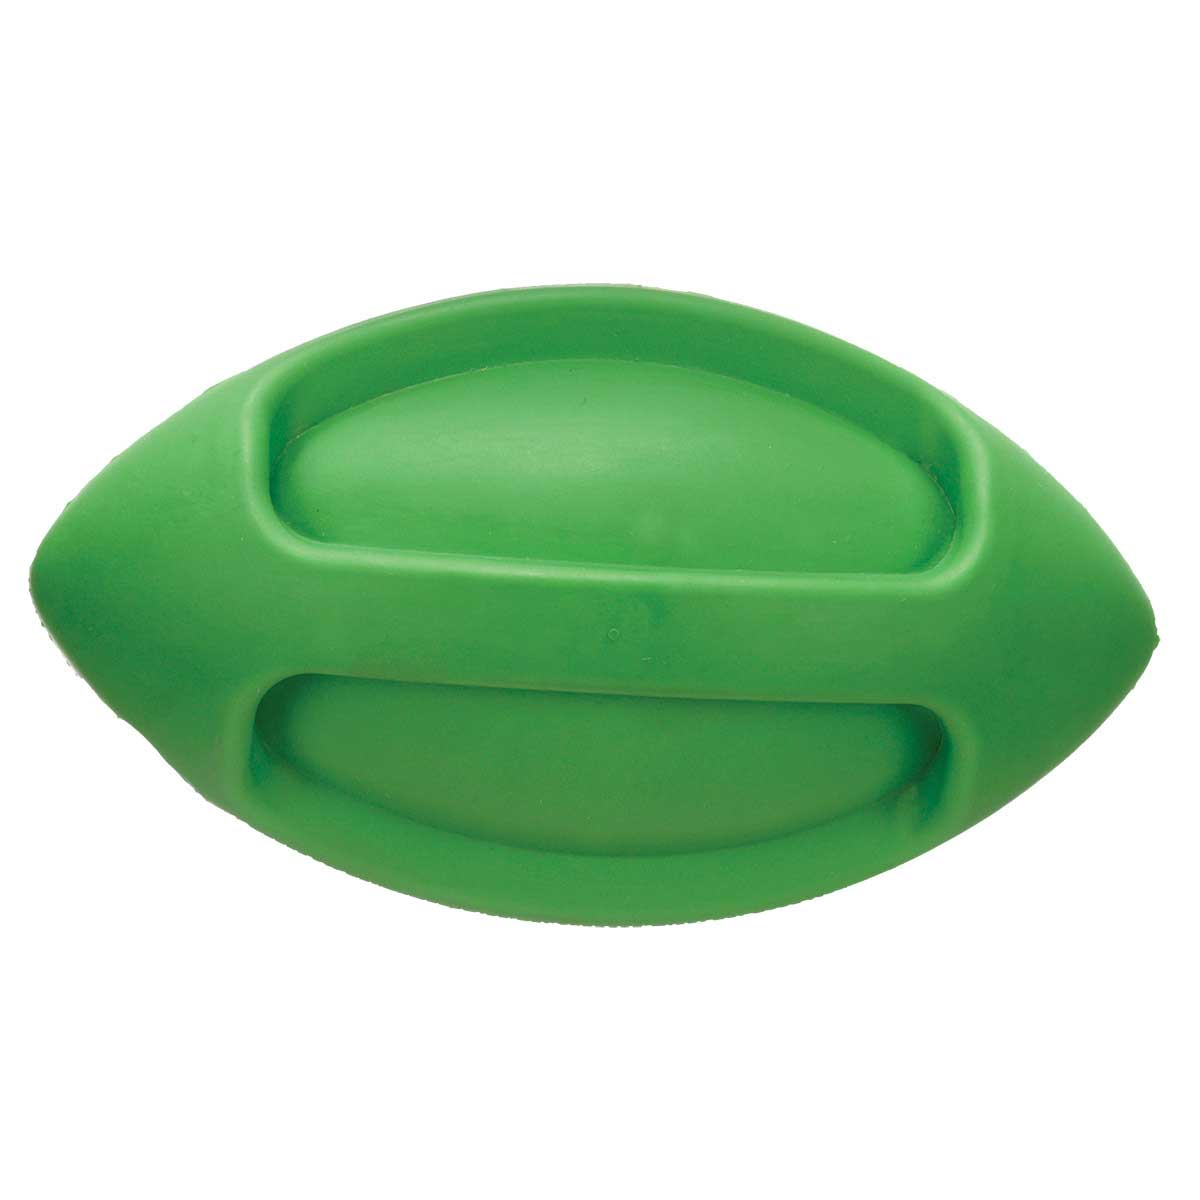 JW Isqueak Funble Football for dogs - Small 5.75""